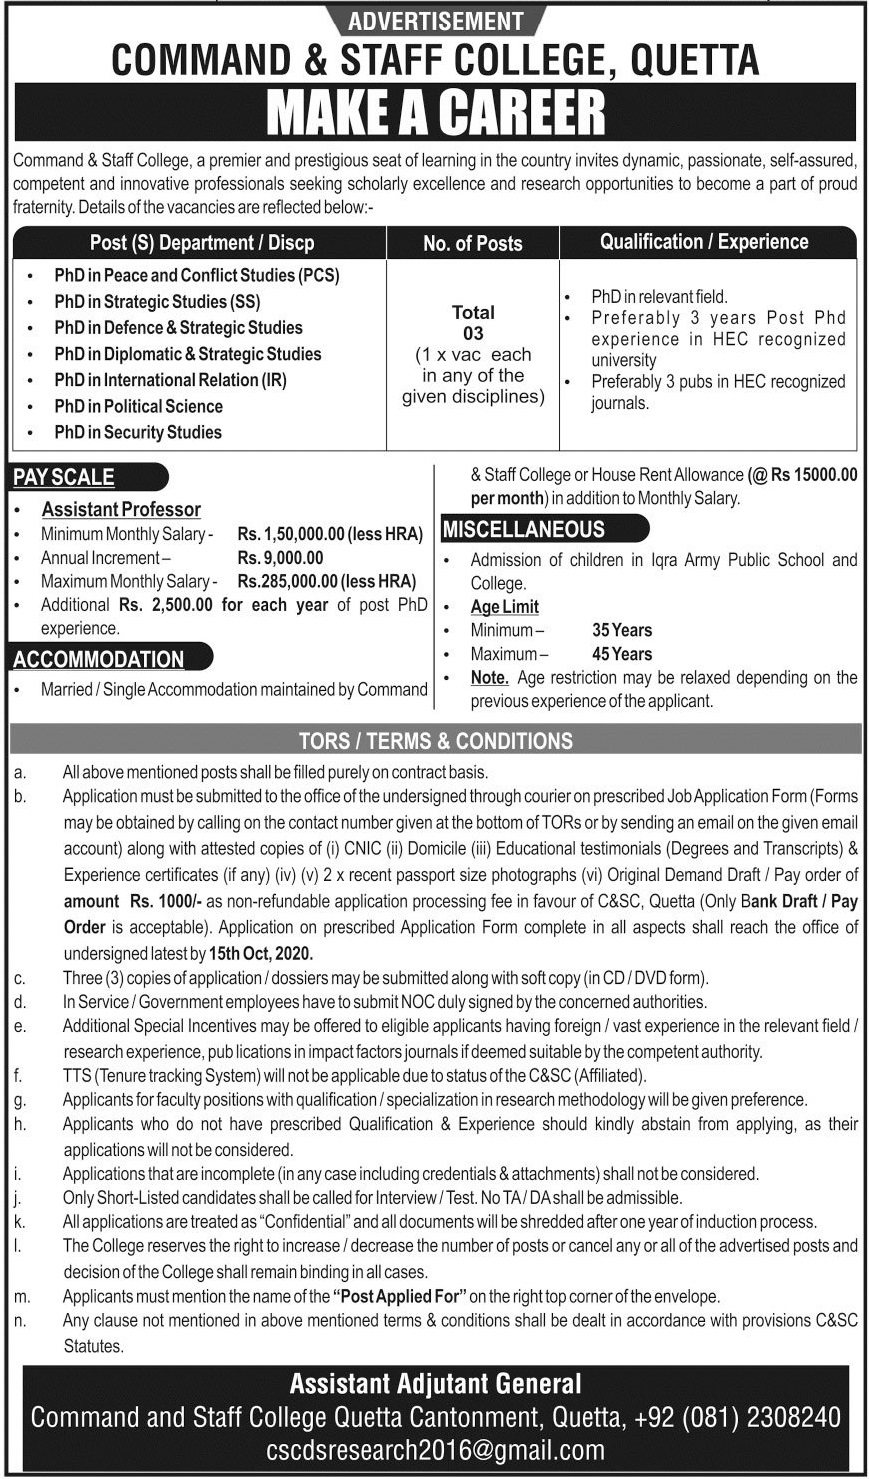 Command and Staff College Quetta Jobs 2020